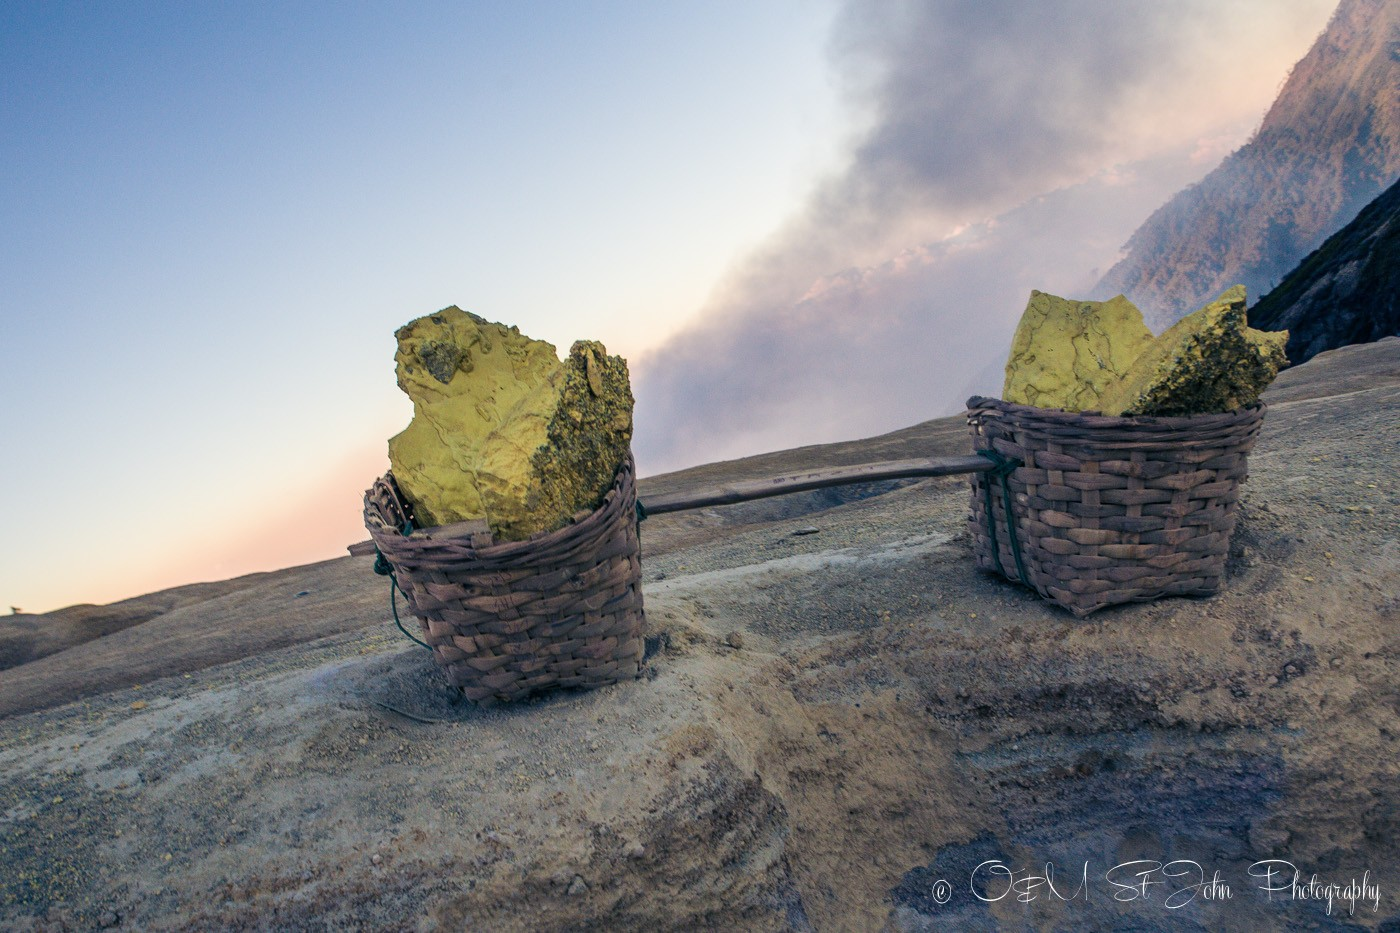 Sulfur baskets at Ijen Crater